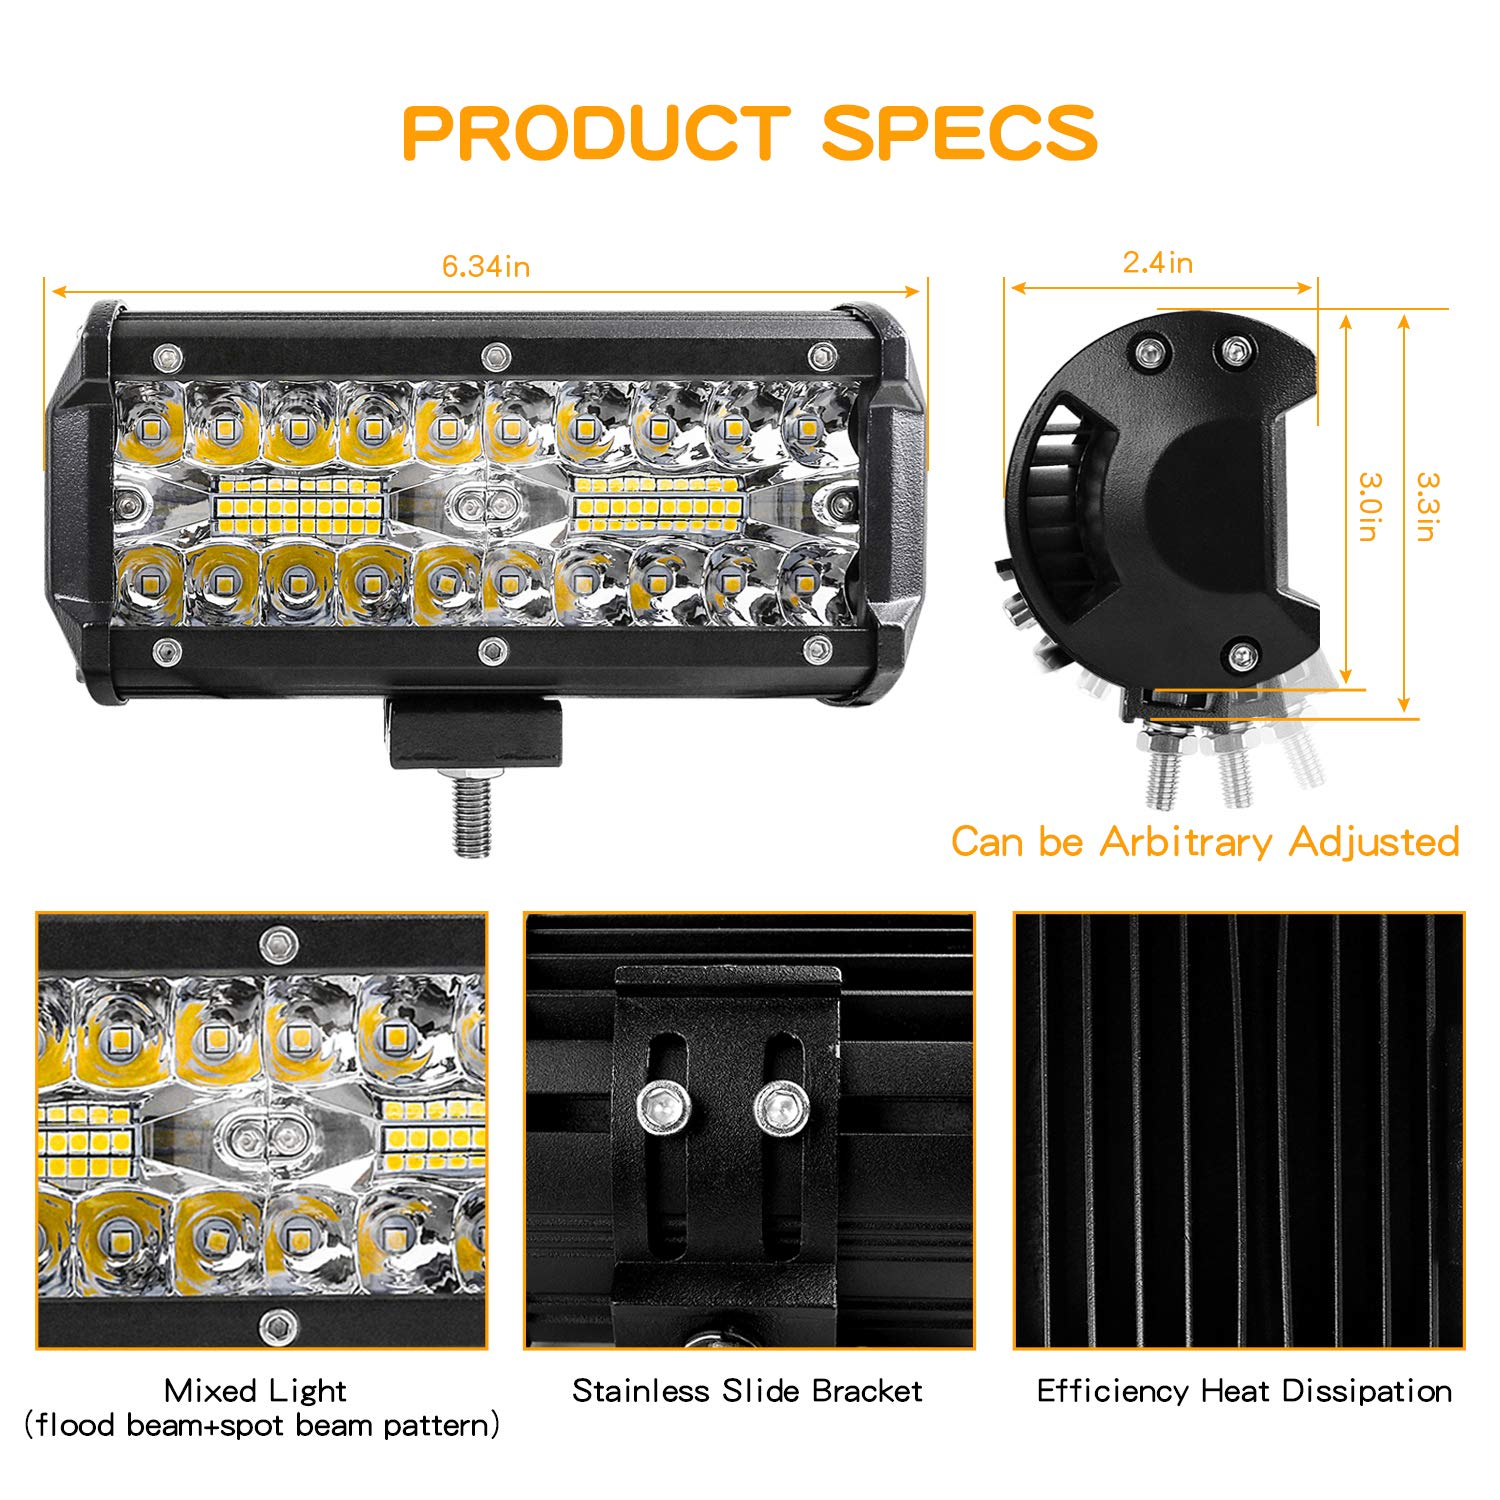 2Pcs Off Road Lights 240W 24000lm with Led Wring Harness Zmoon Led Light Bar Waterproof Led Spot/&Flood Combo Beam Light Bar for SUV//ATV//Jeep//Boat 10ft //2 Lead